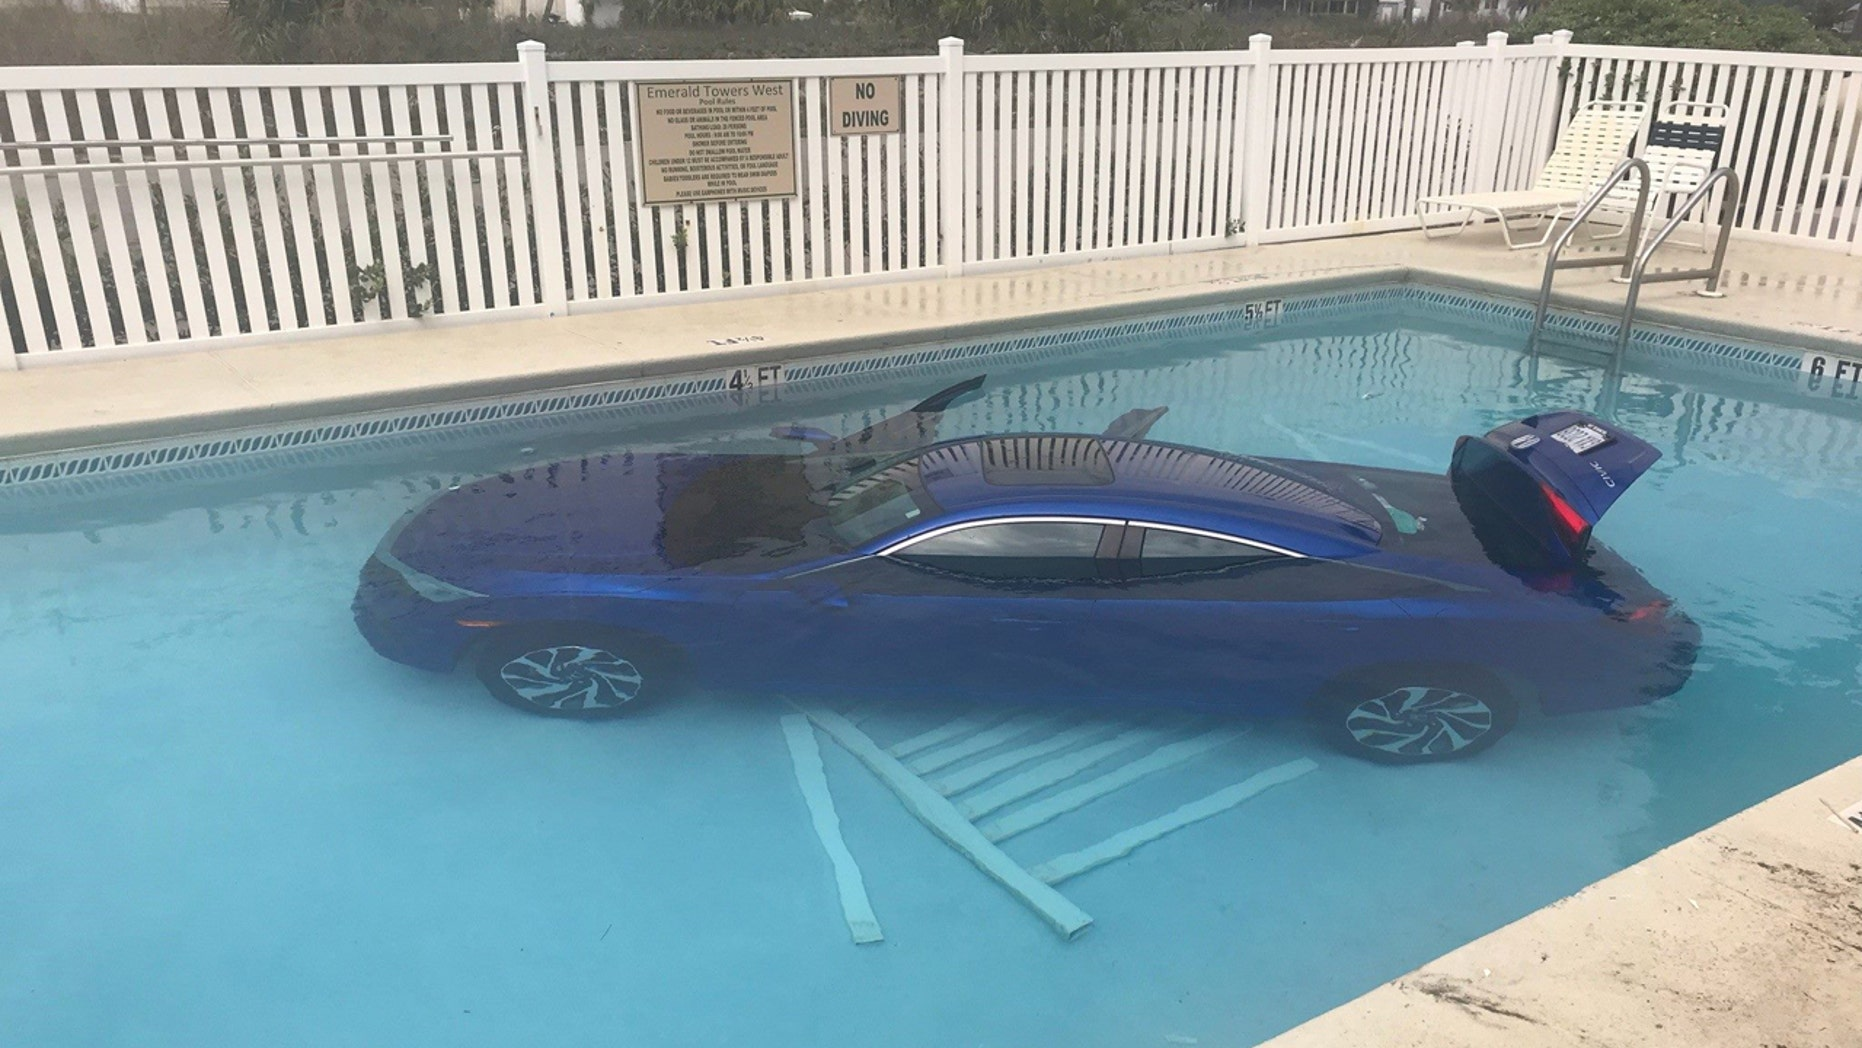 A Honda Civic with a man and child inside ended up in a pool on Tuesday after a woman failed to put the car into park.